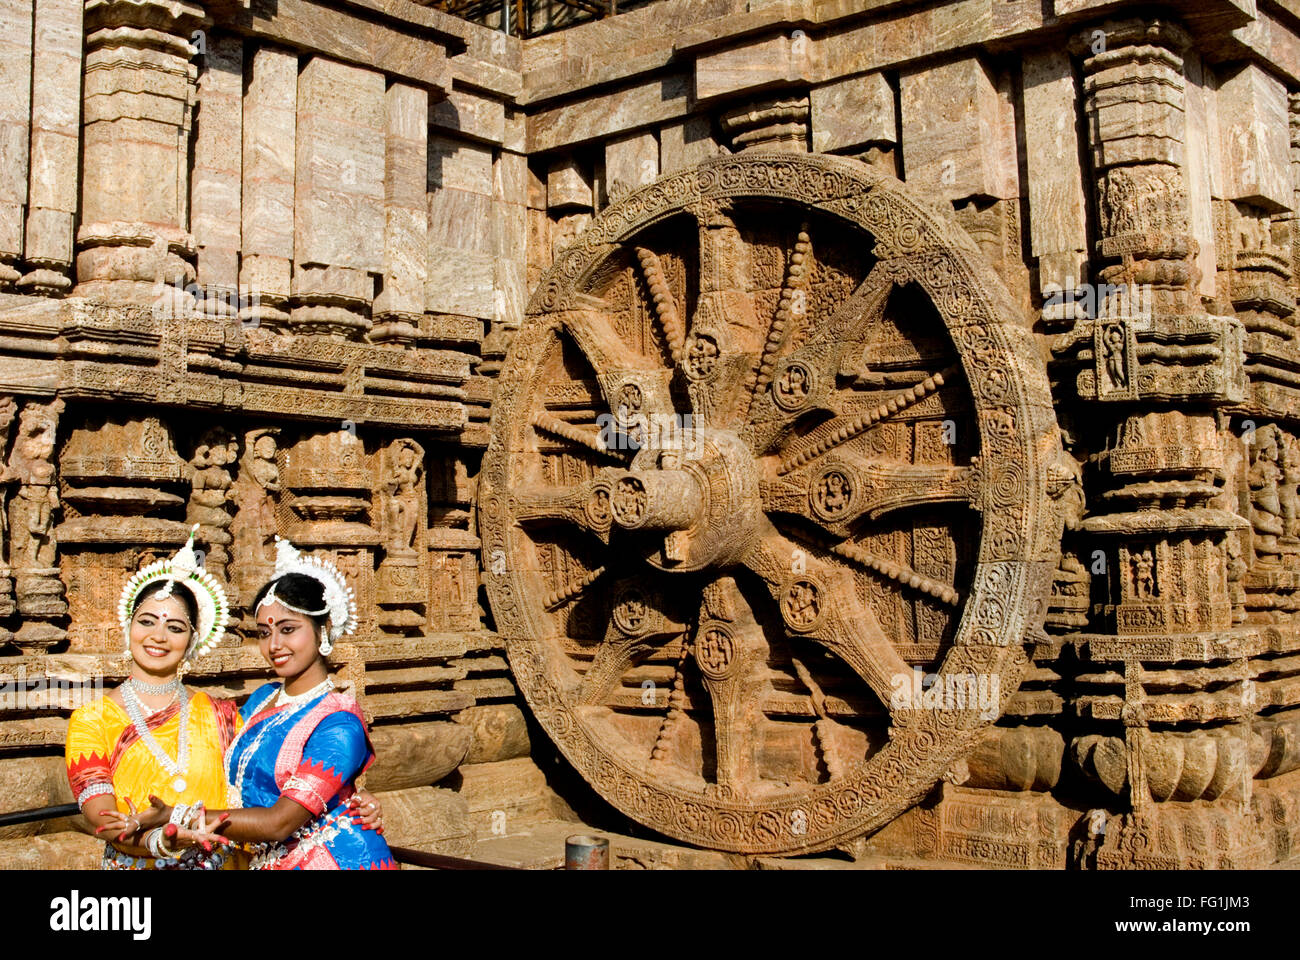 Odissi dancers strike pose re enacts Indian myths such as Ramayana front iconic Sun Chariot Sun temple complex Konarak - Stock Image